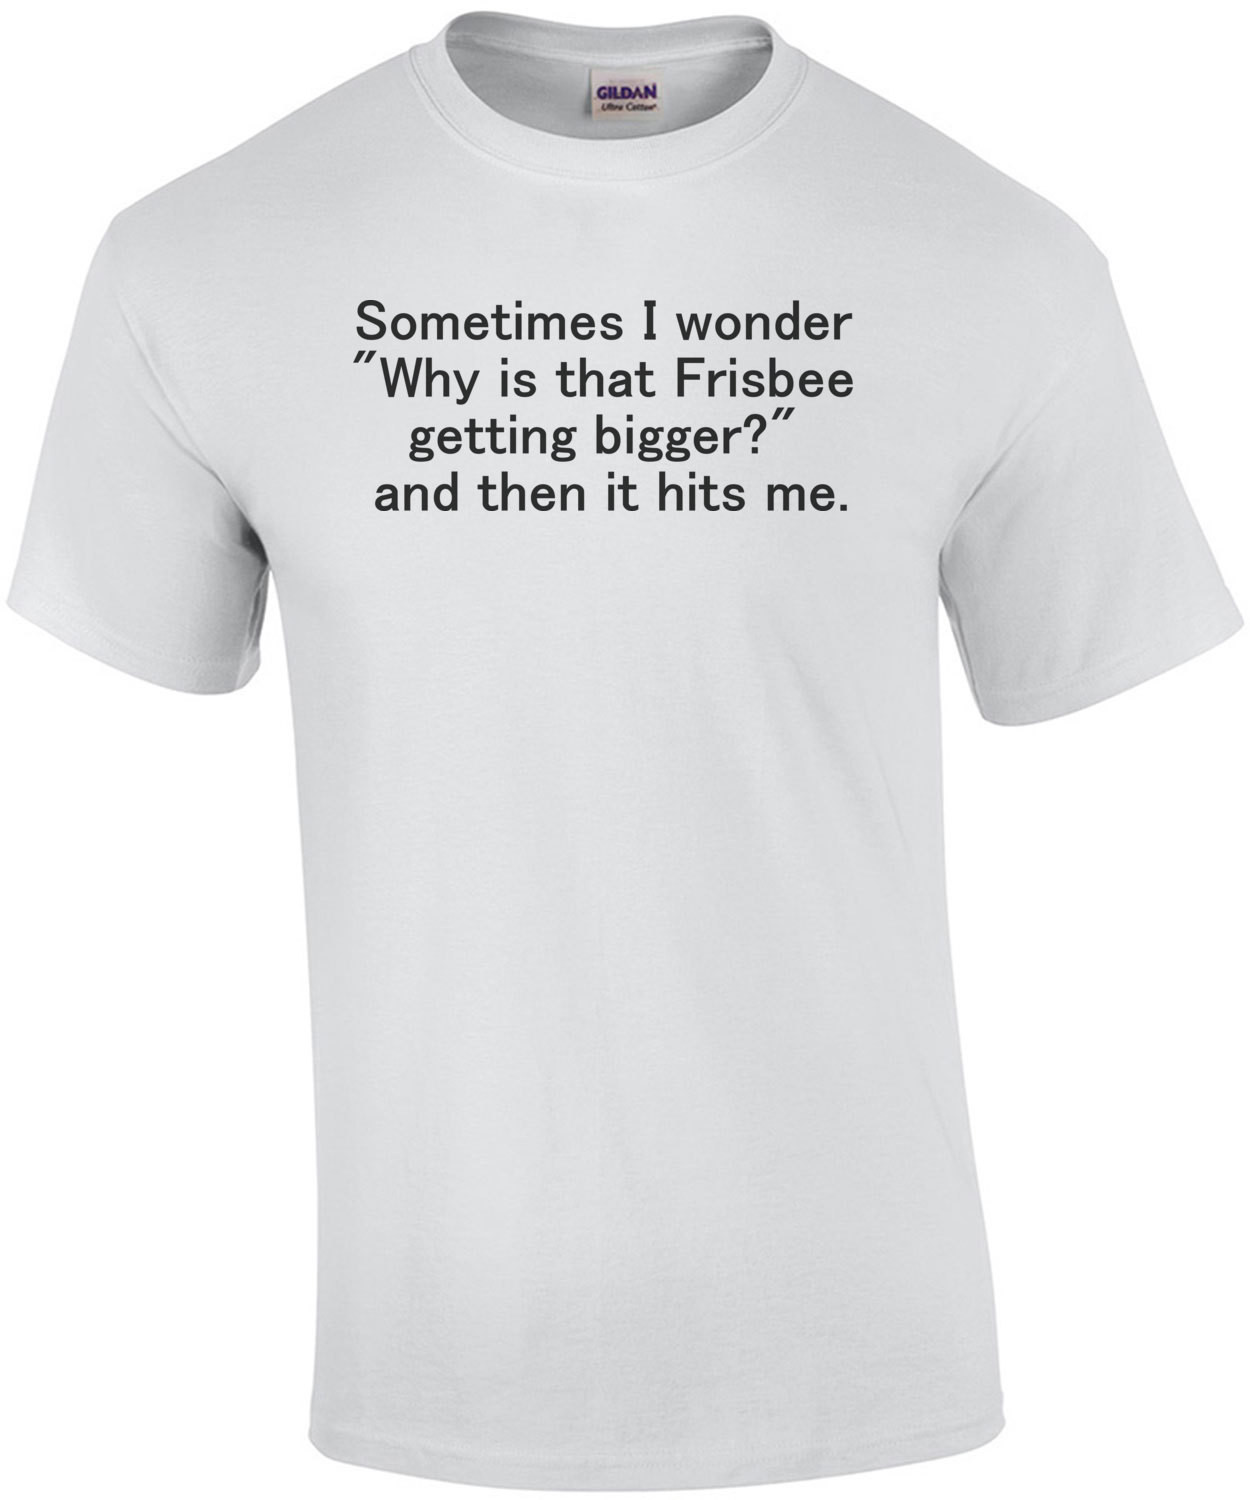 """Sometimes I wonder """"Why is that Frisbee getting bigger?"""" ... and then it hits me. Shirt"""